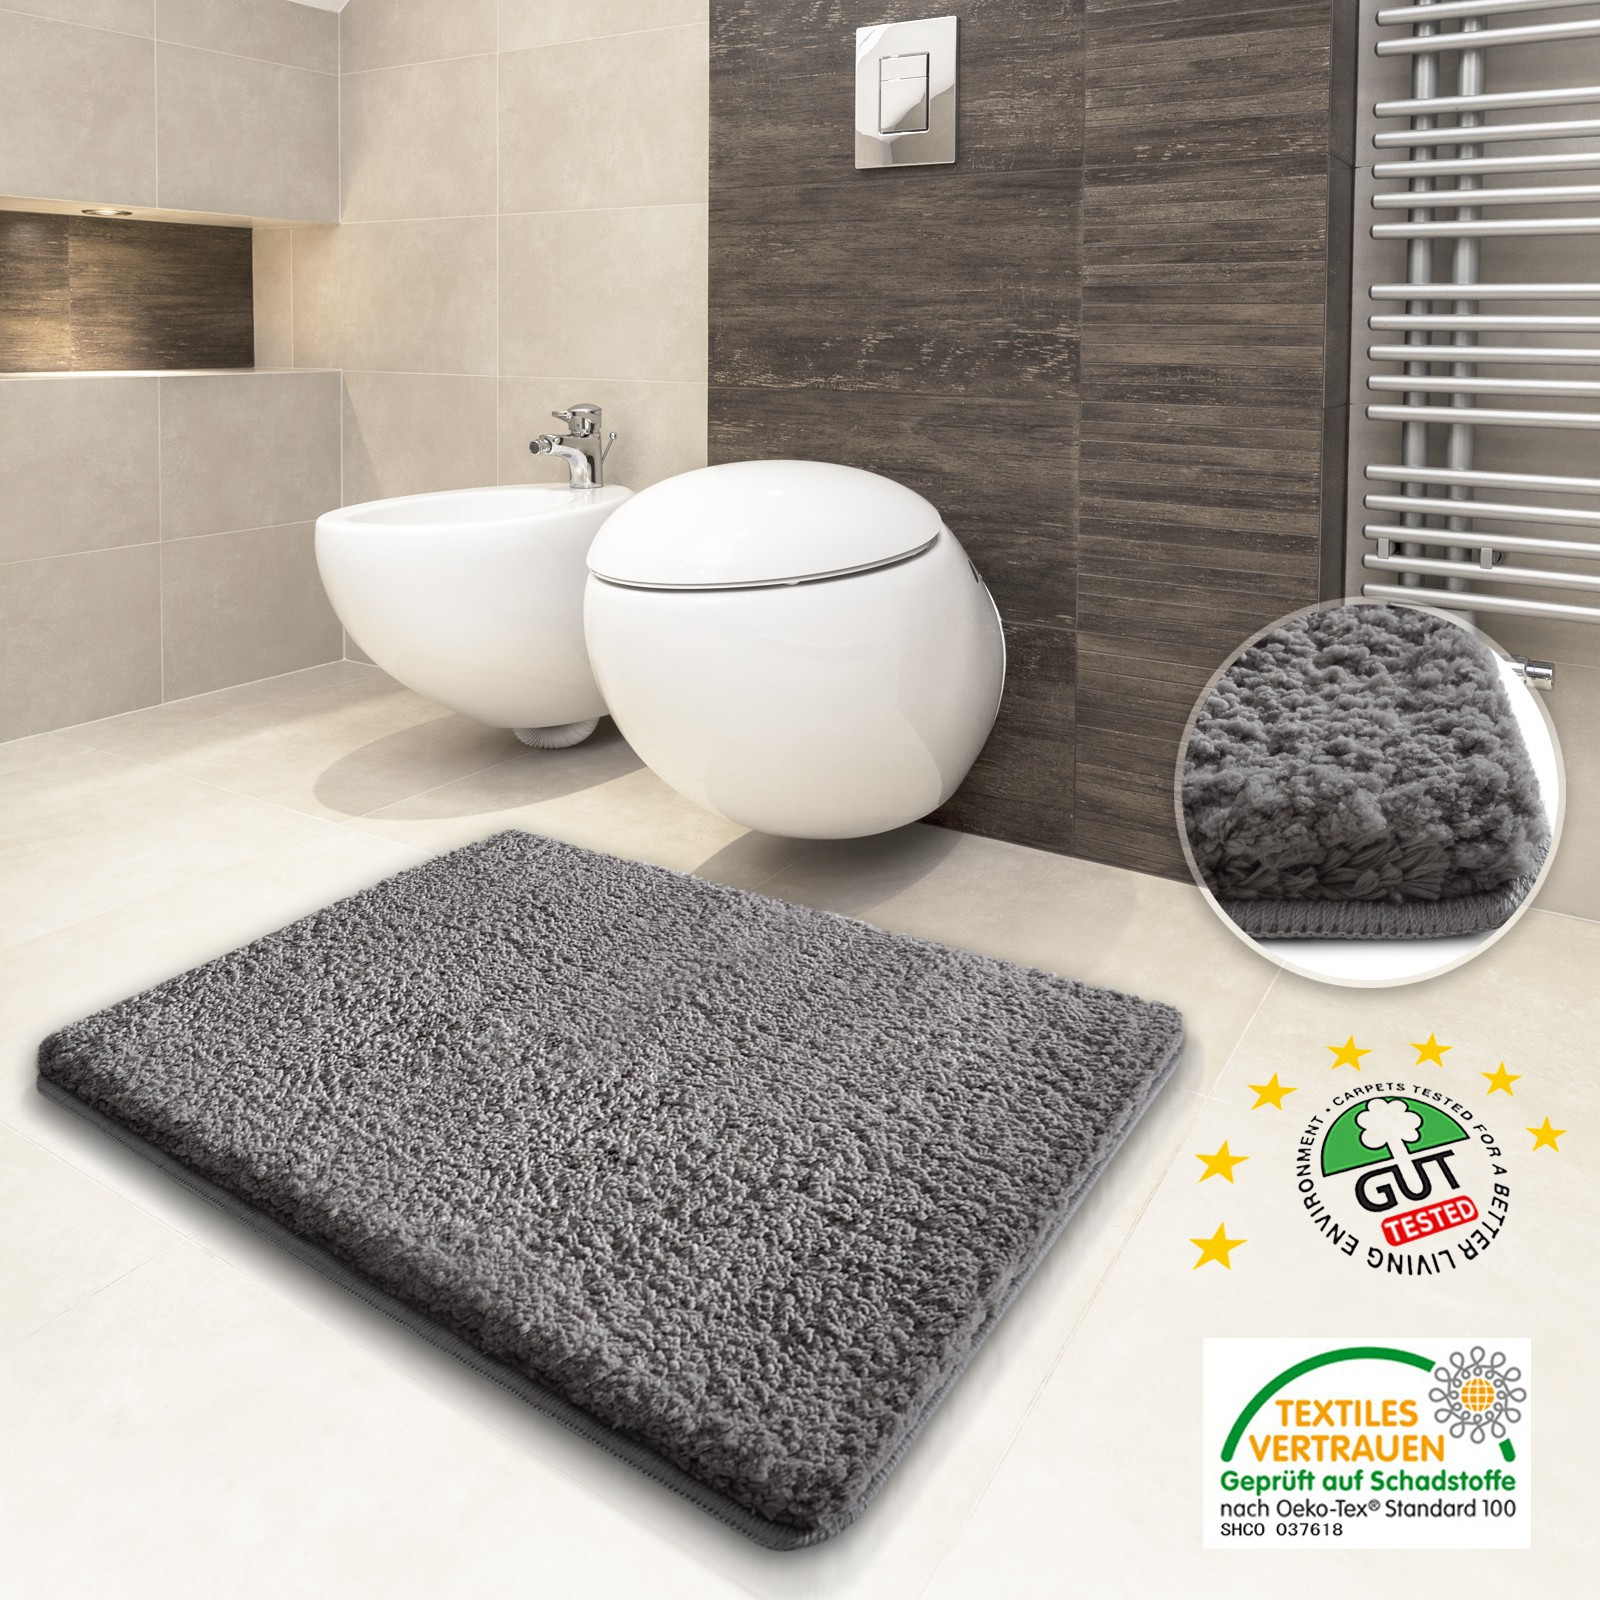 luxury gray bath mat and ceramic floor and wooden wall